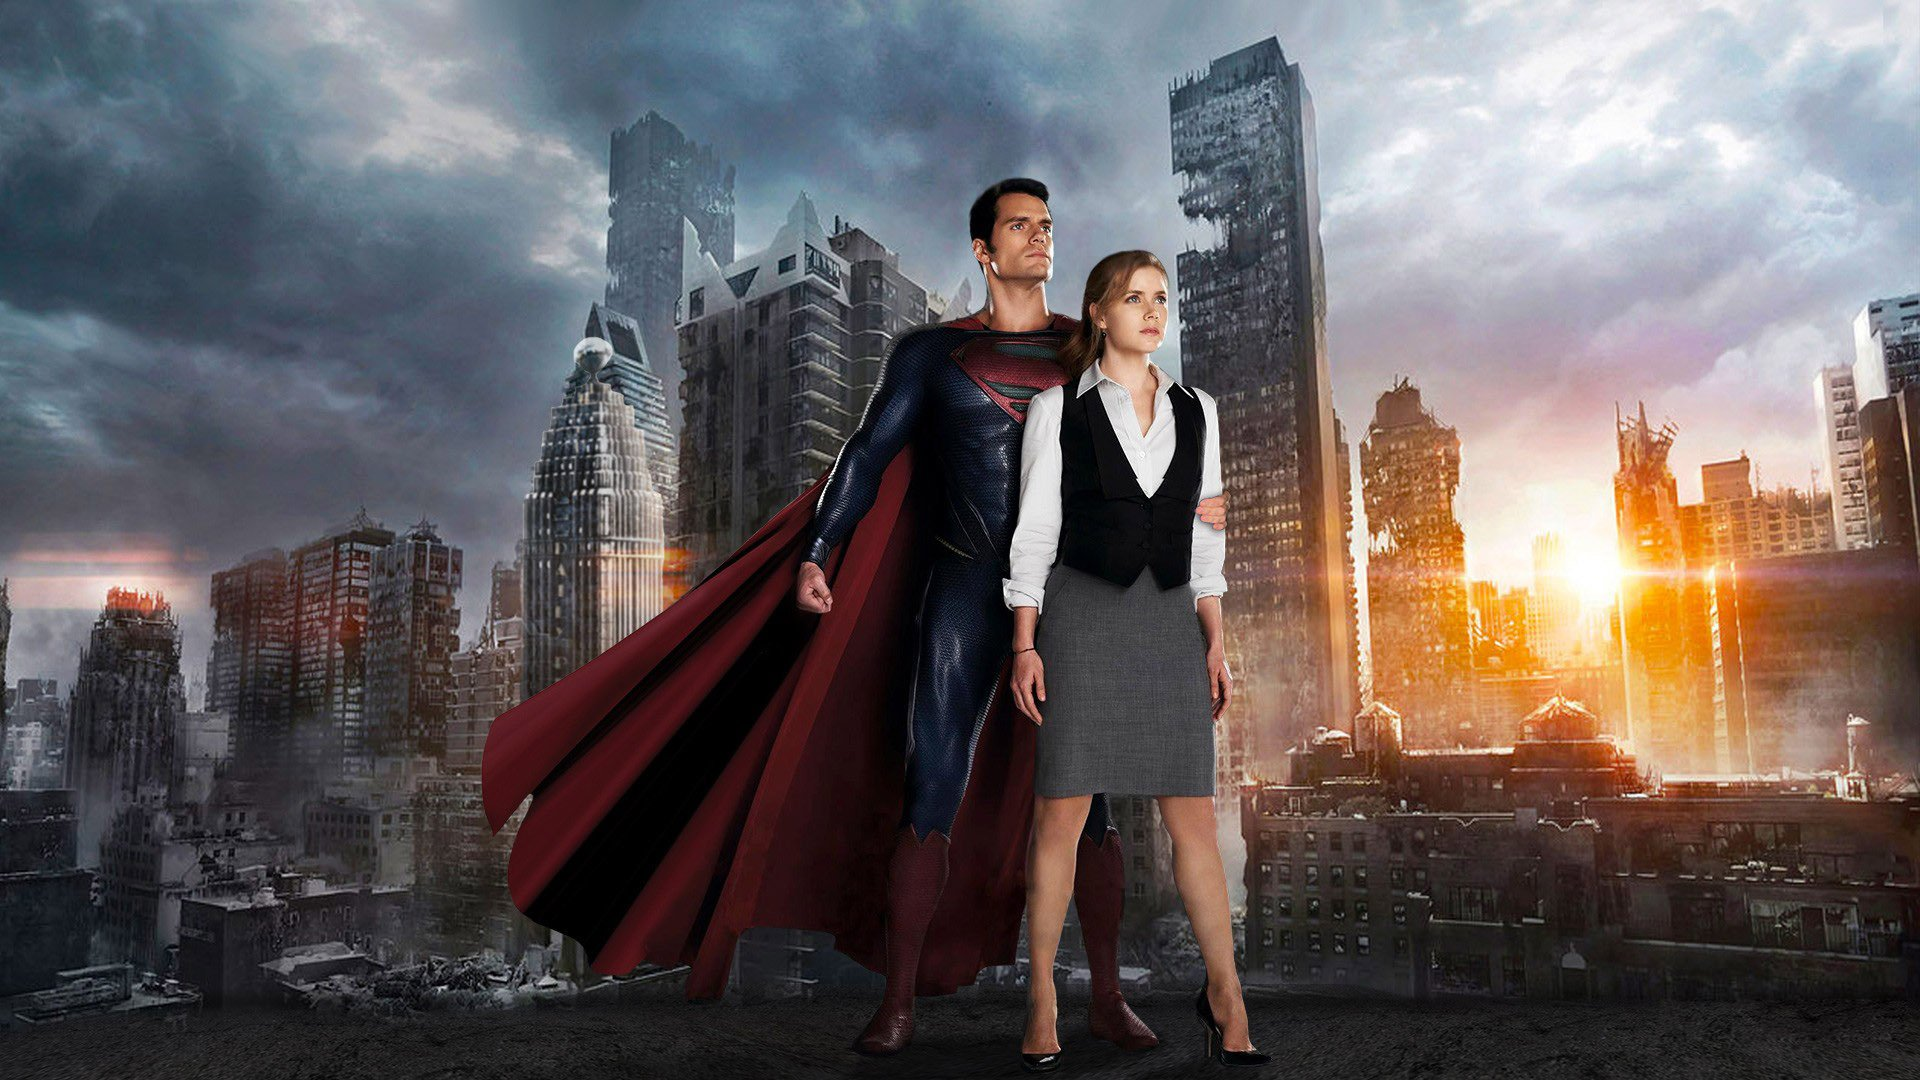 superman-henry-cavill-lois-lane-amy-adams-man-of-steel